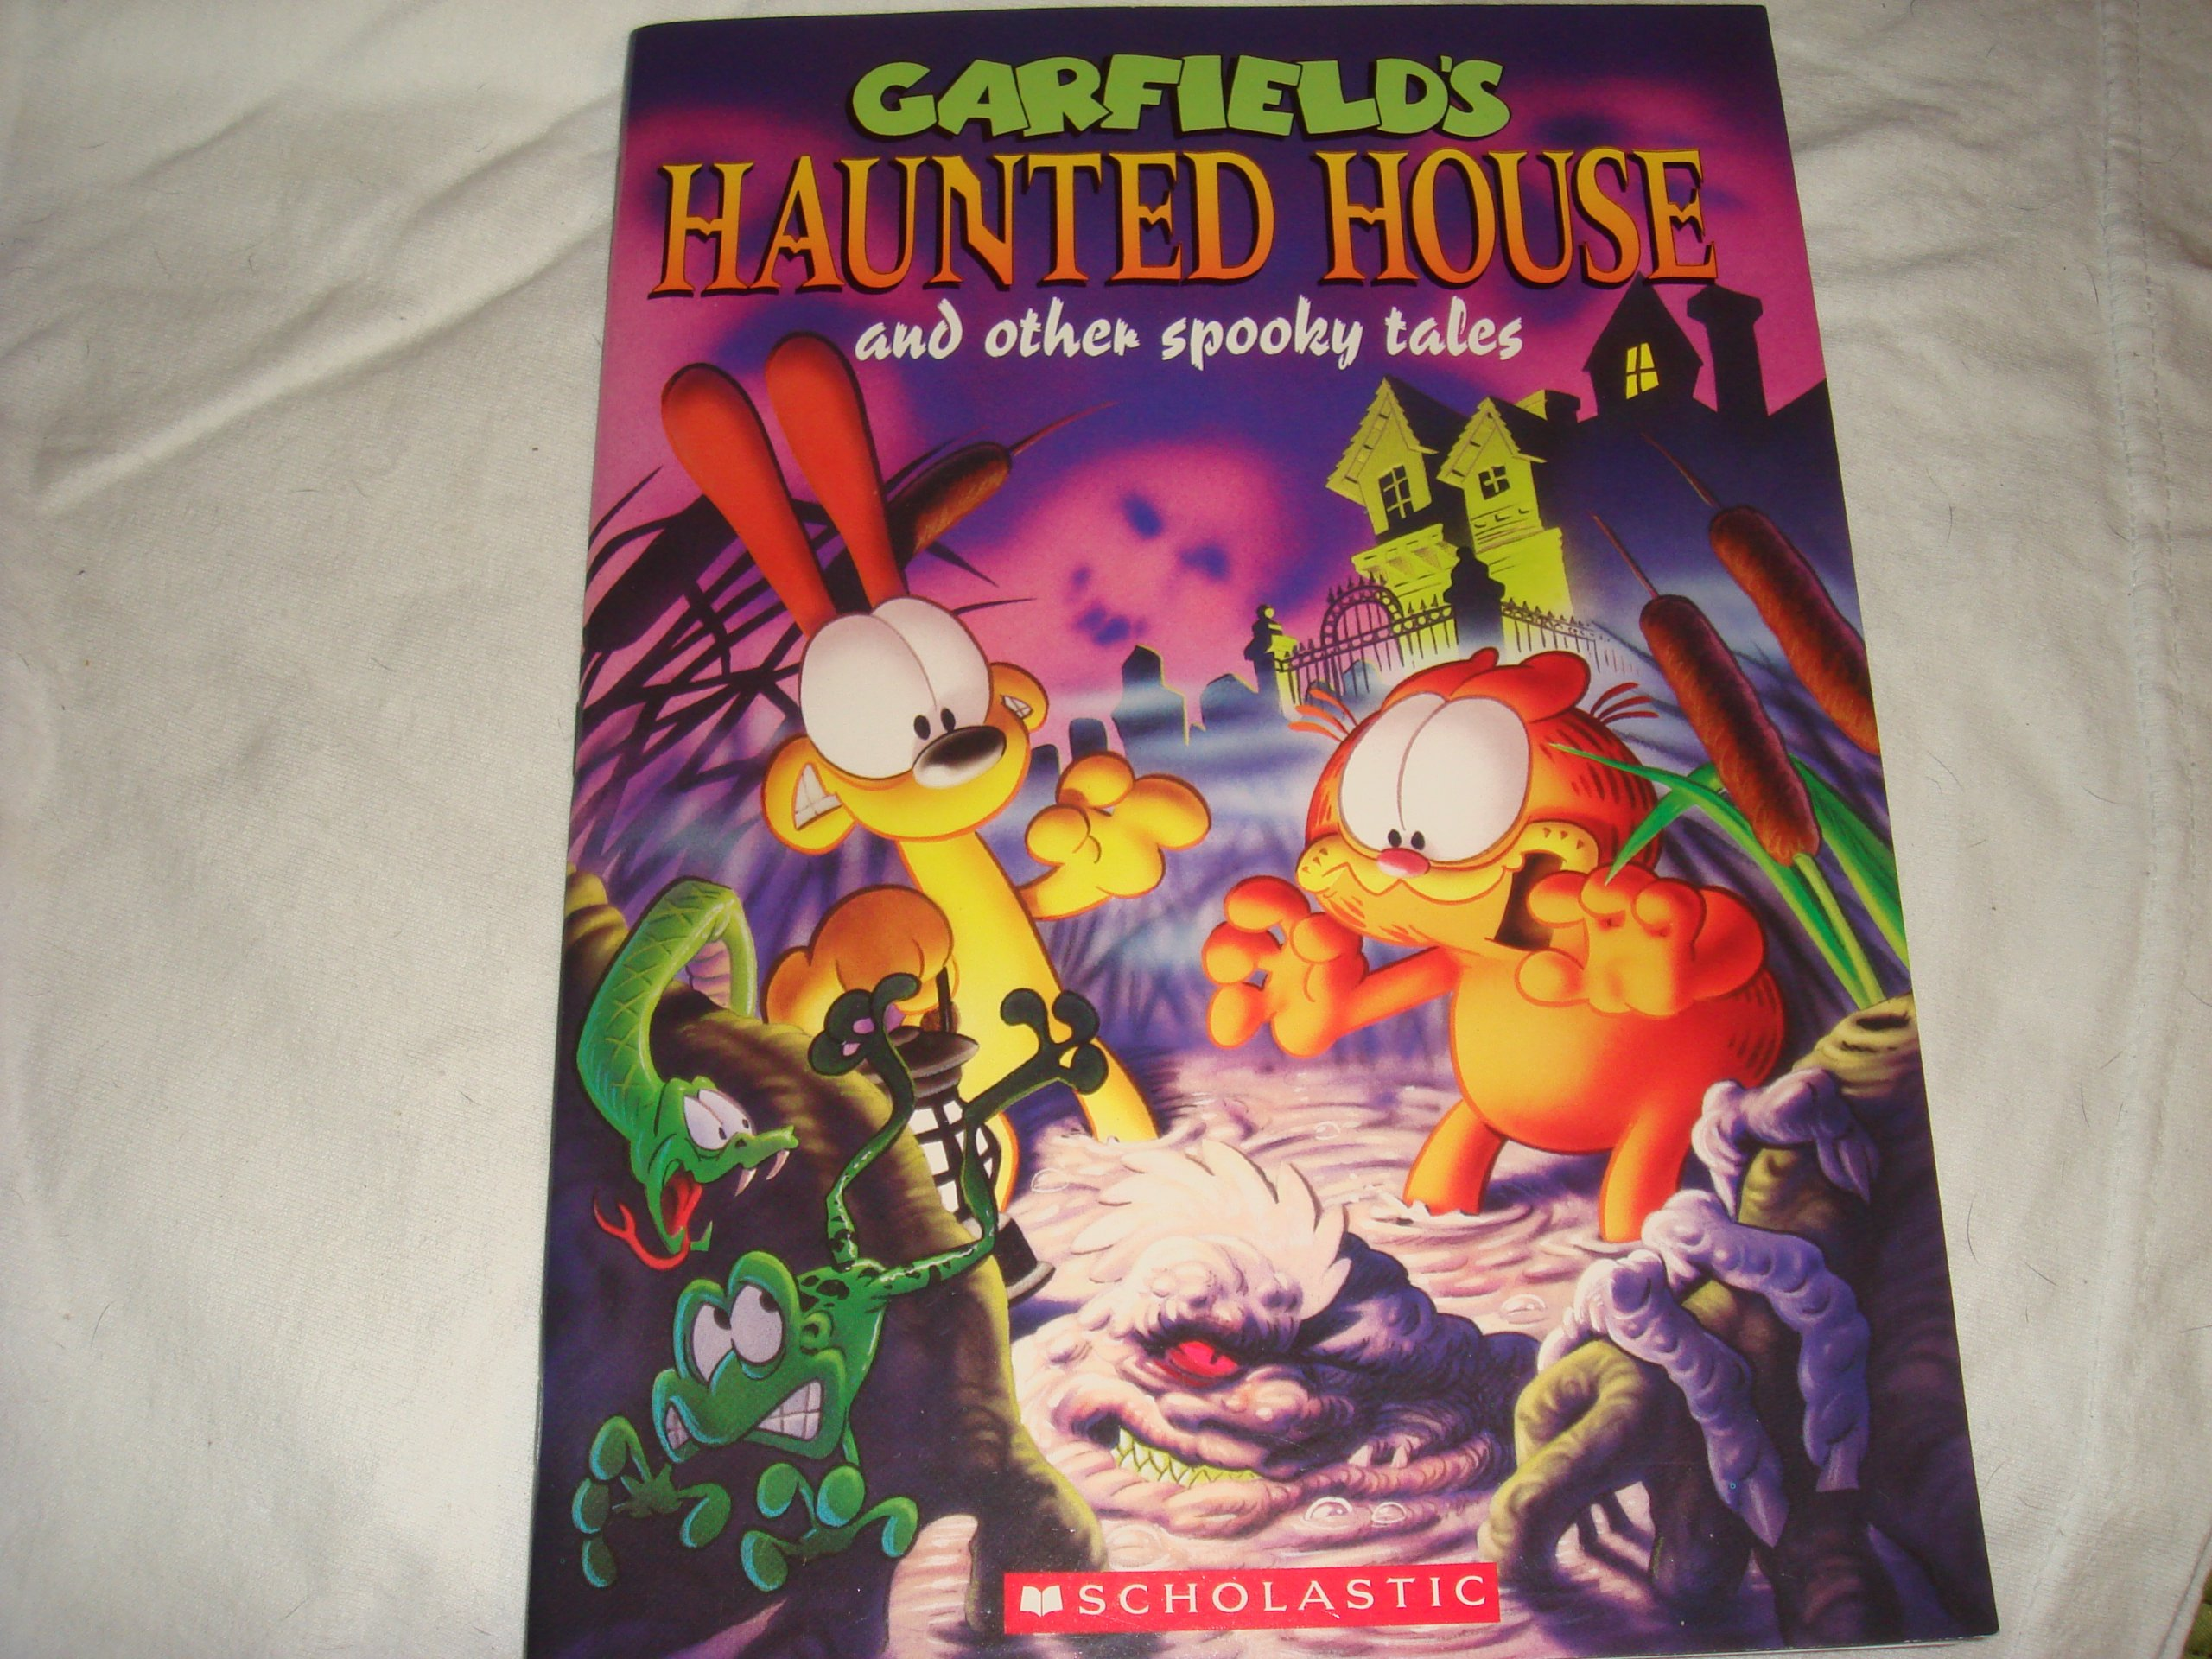 Garfield S Haunted House And Other Spooky Tales Jim Davis 9780439637848 Amazon Com Books